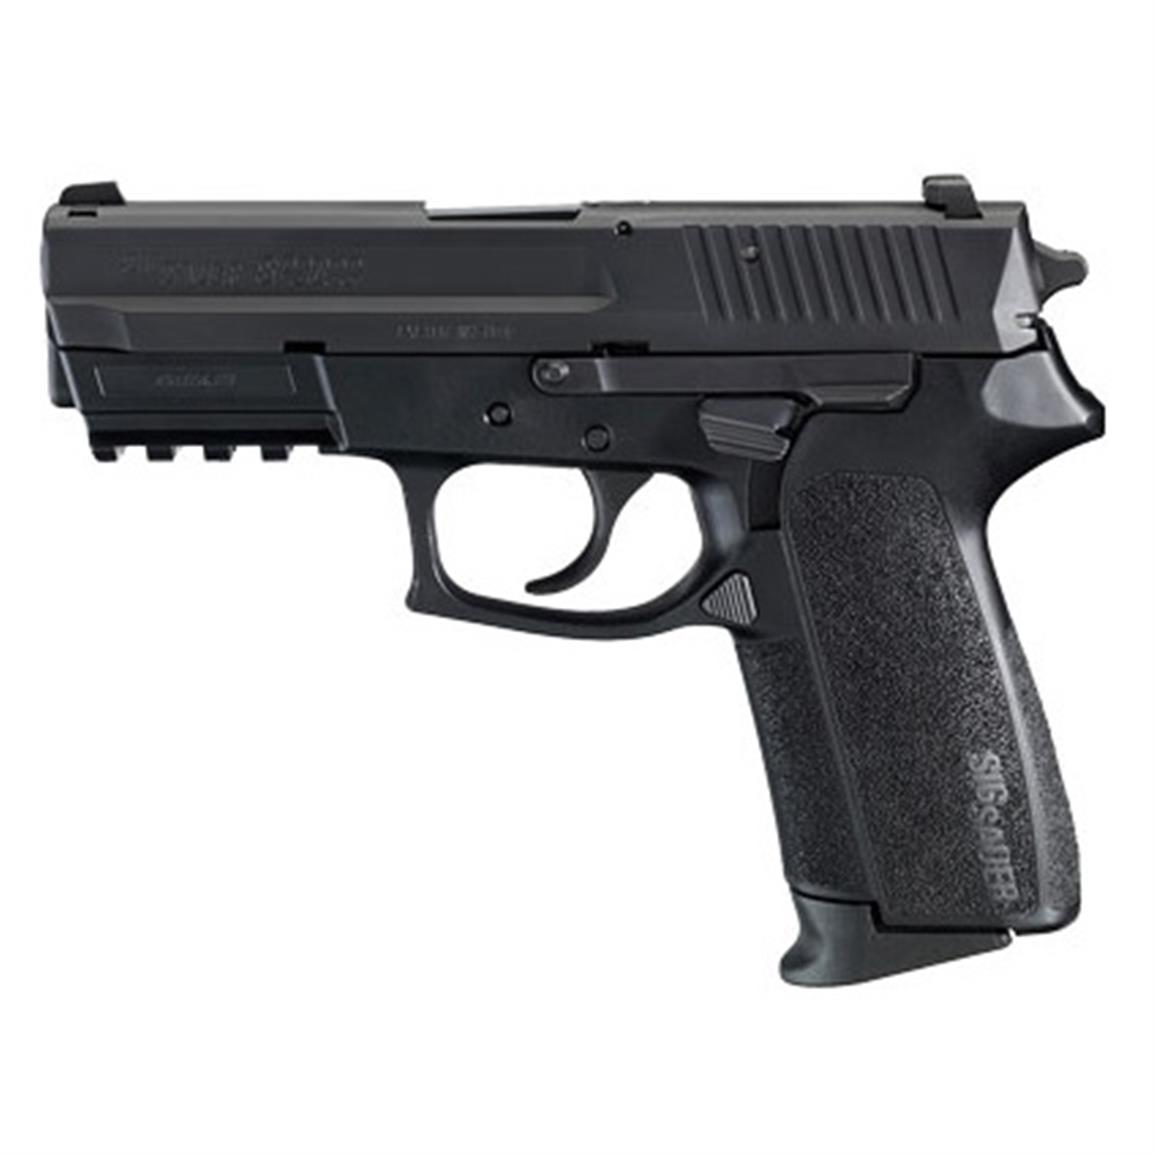 SIG SAUER SP2022, Semi-automatic, .40 Smtih & Wesson, E202240BSS, 798681306640, with SIGLITE Sights